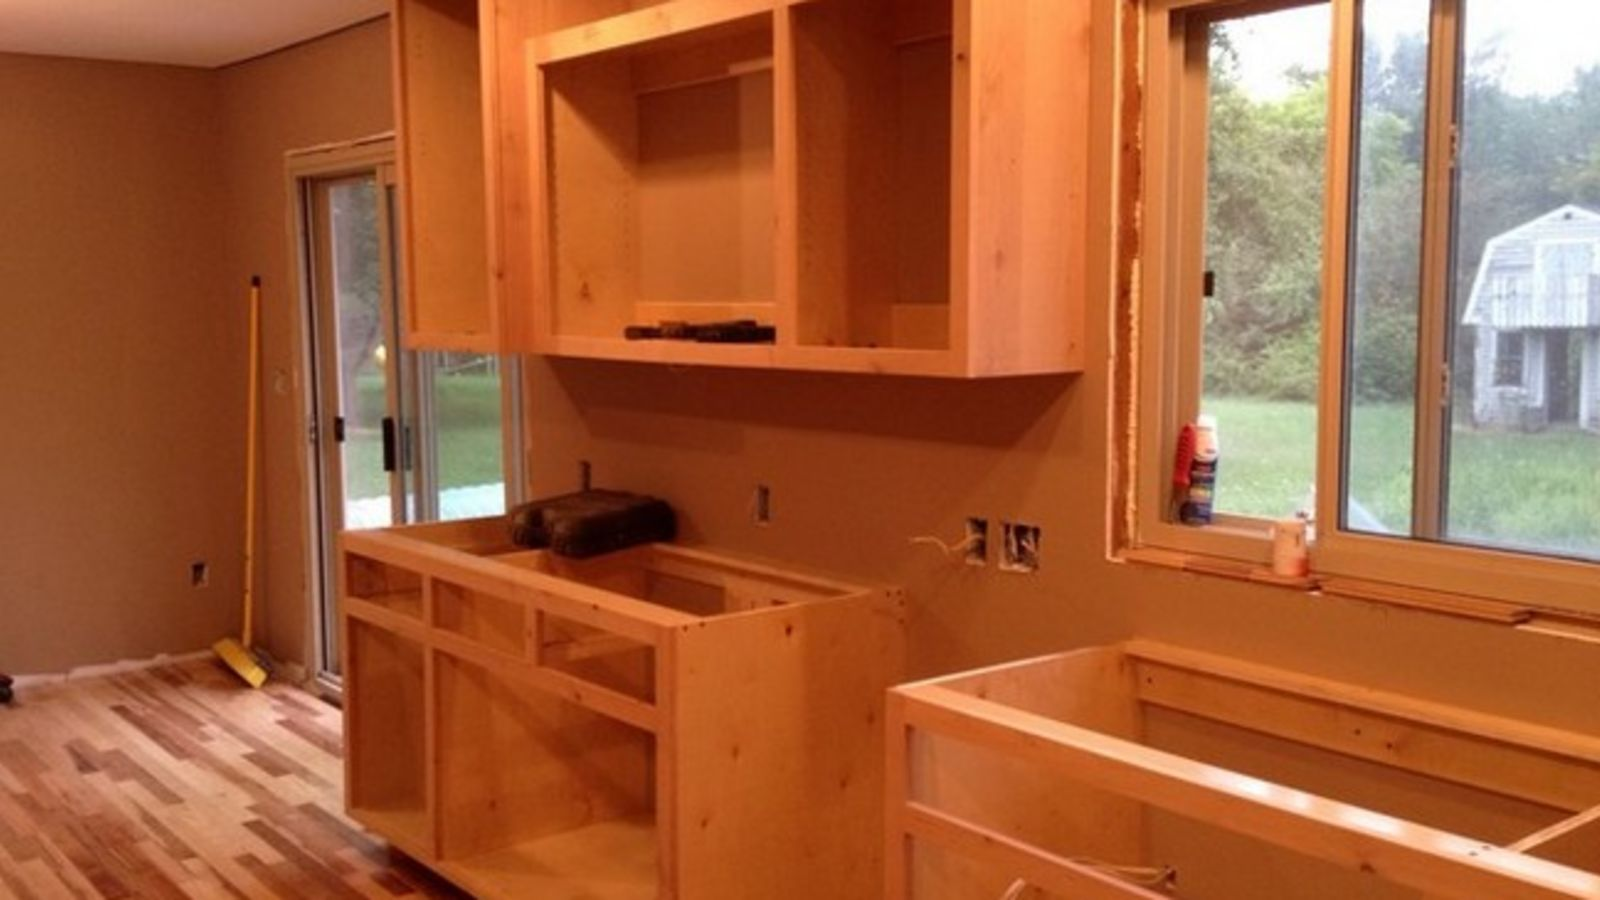 Installing Dishwashers And Cabinet Hardware A Brief Insight Building Kitchen Cabinets Kitchen Cabinet Plans Simple Kitchen Cabinets